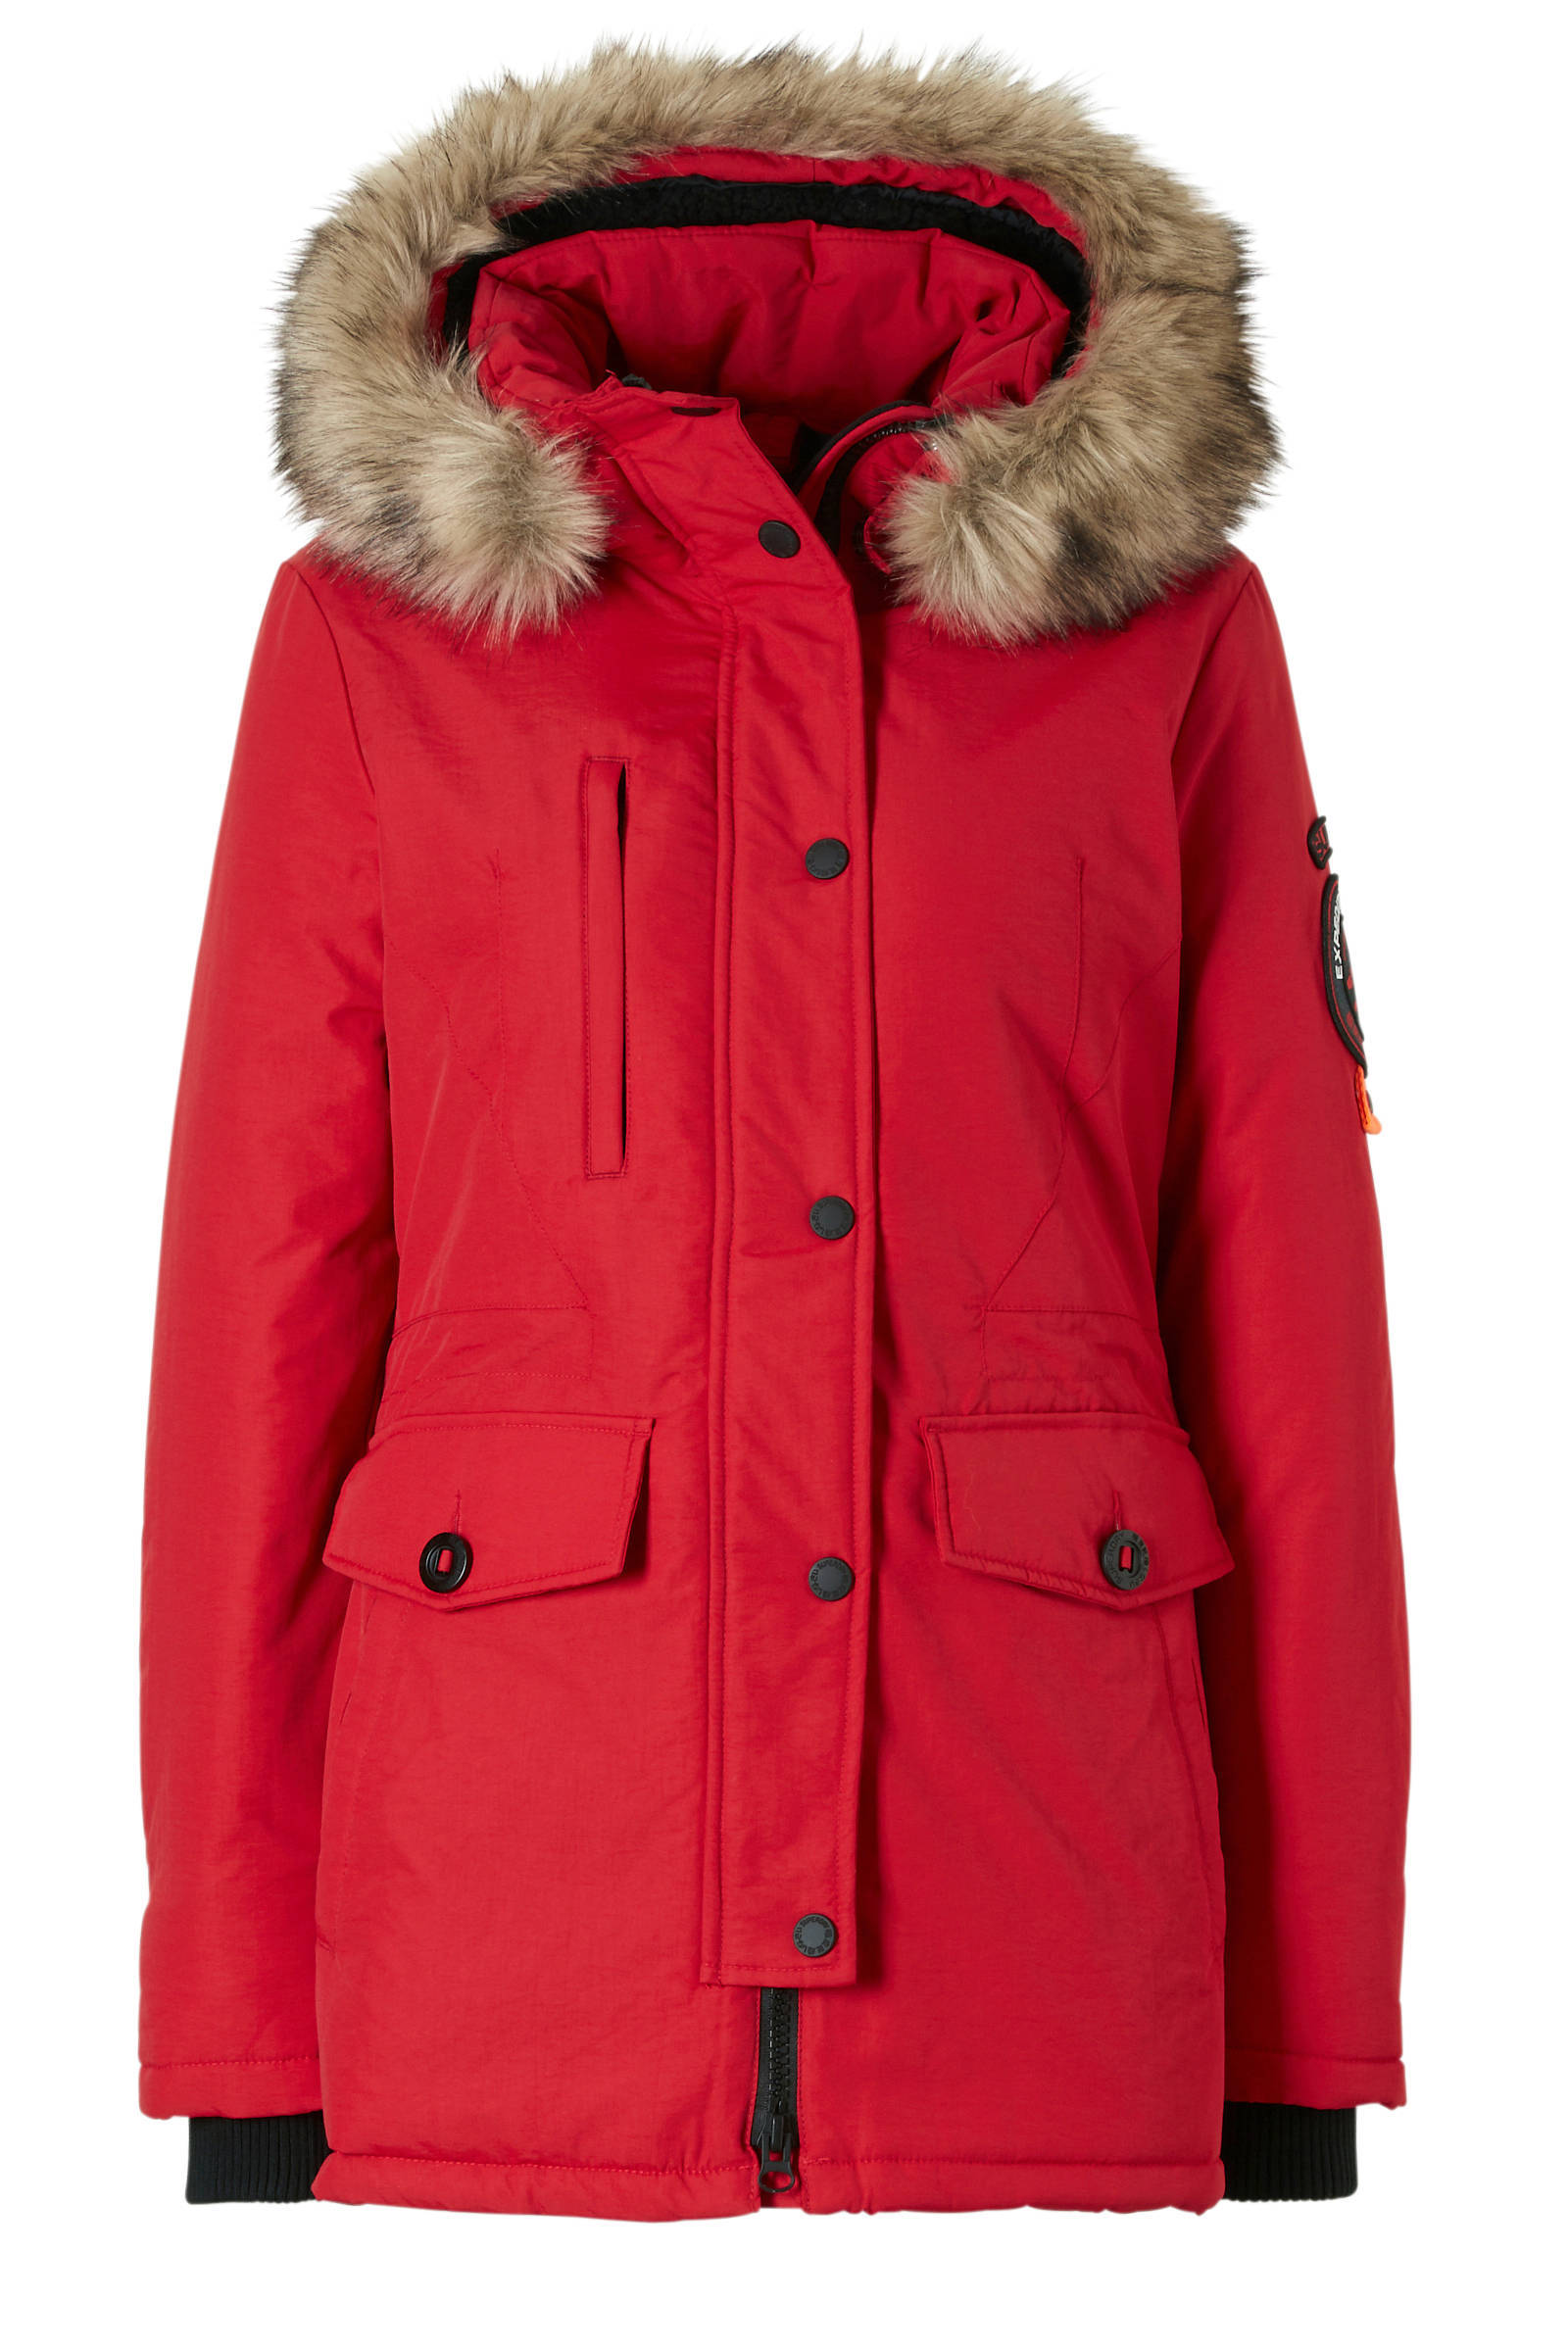 Wehkamp Jas Ashley Everest Superdry Wehkamp Superdry Jas Superdry Everest Ashley IzpfCwq